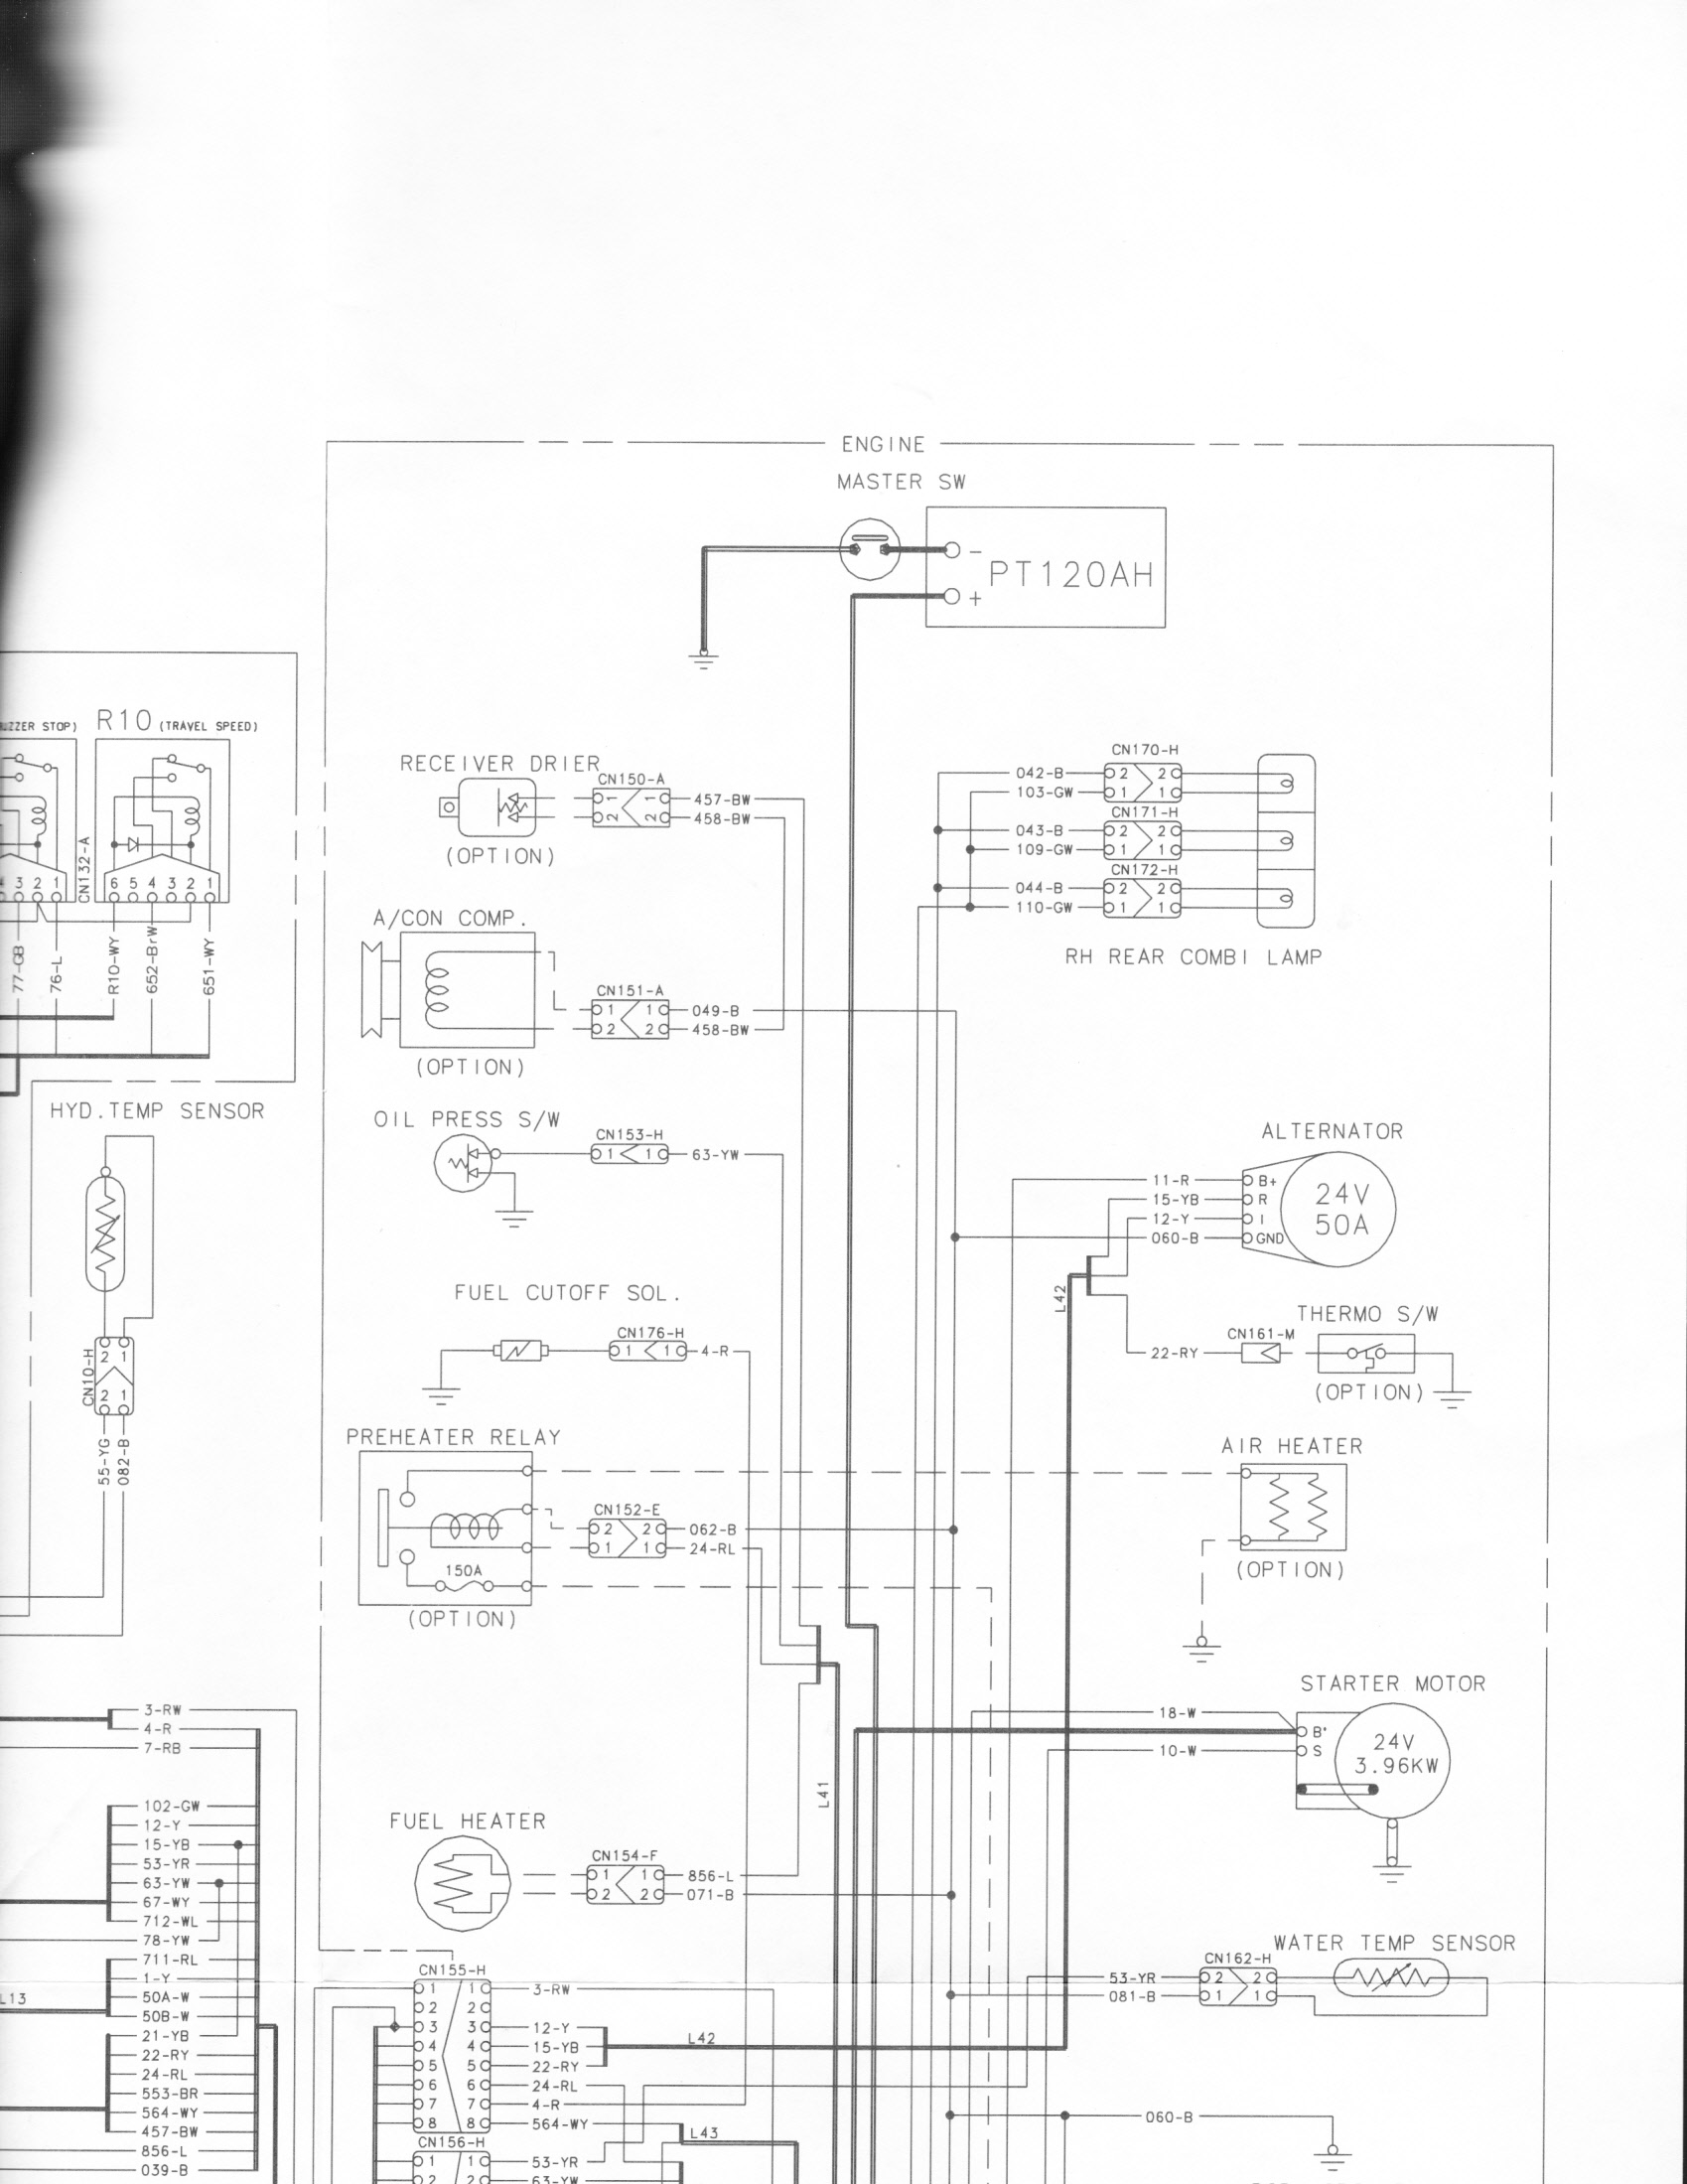 Looking For Mech With Experience 1995 Samsung Se130lcm 2 Wiring Diagrams Hello I Do Have A Good Schematic It Is Just Extra Large Scanned In Sections To See If You Can Piece Together At Site